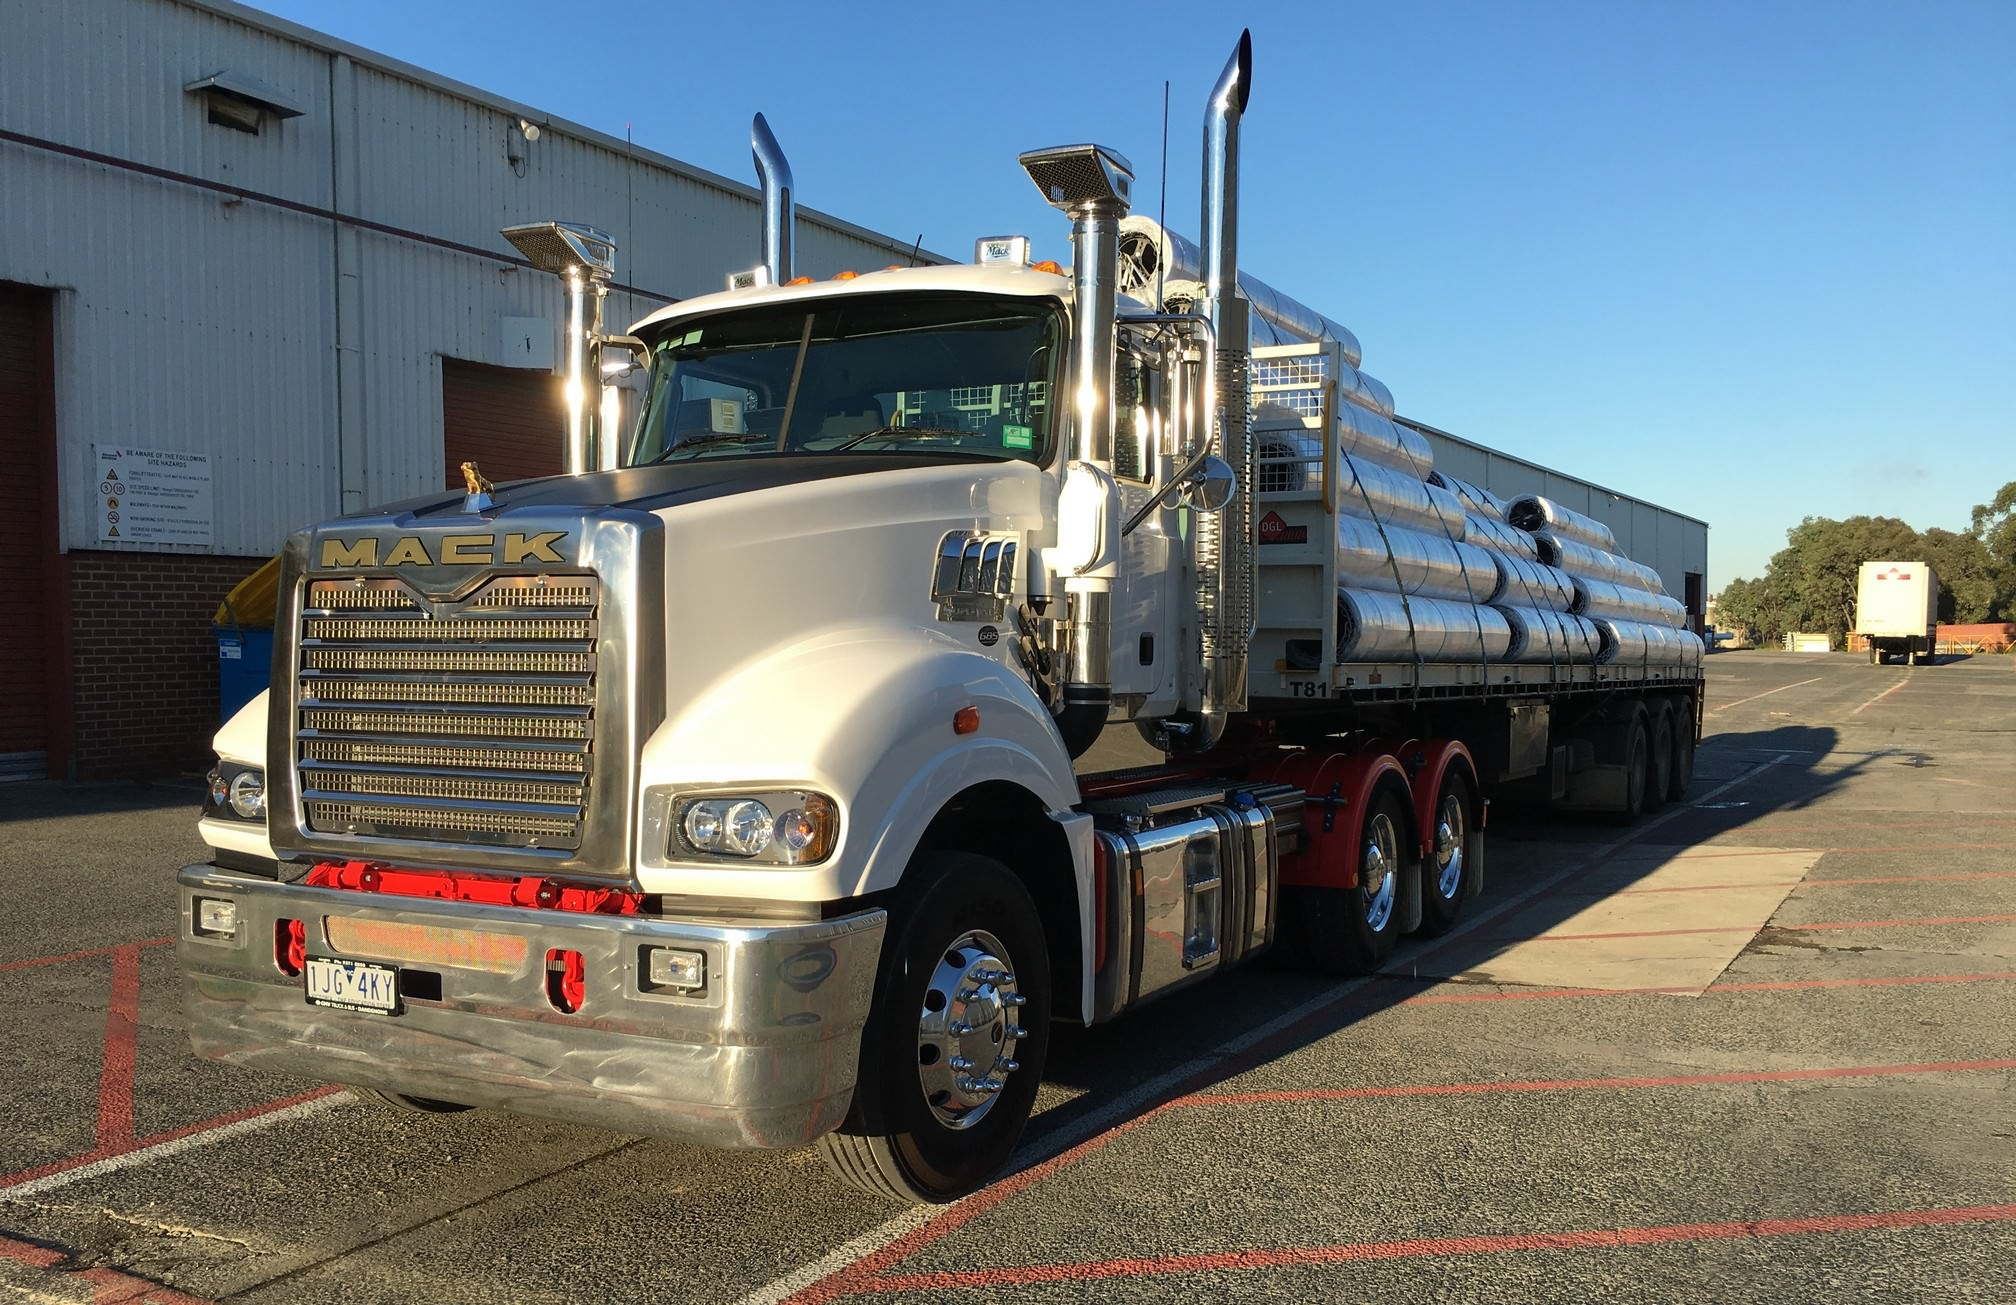 Mack Superliner with a load of roller-doors